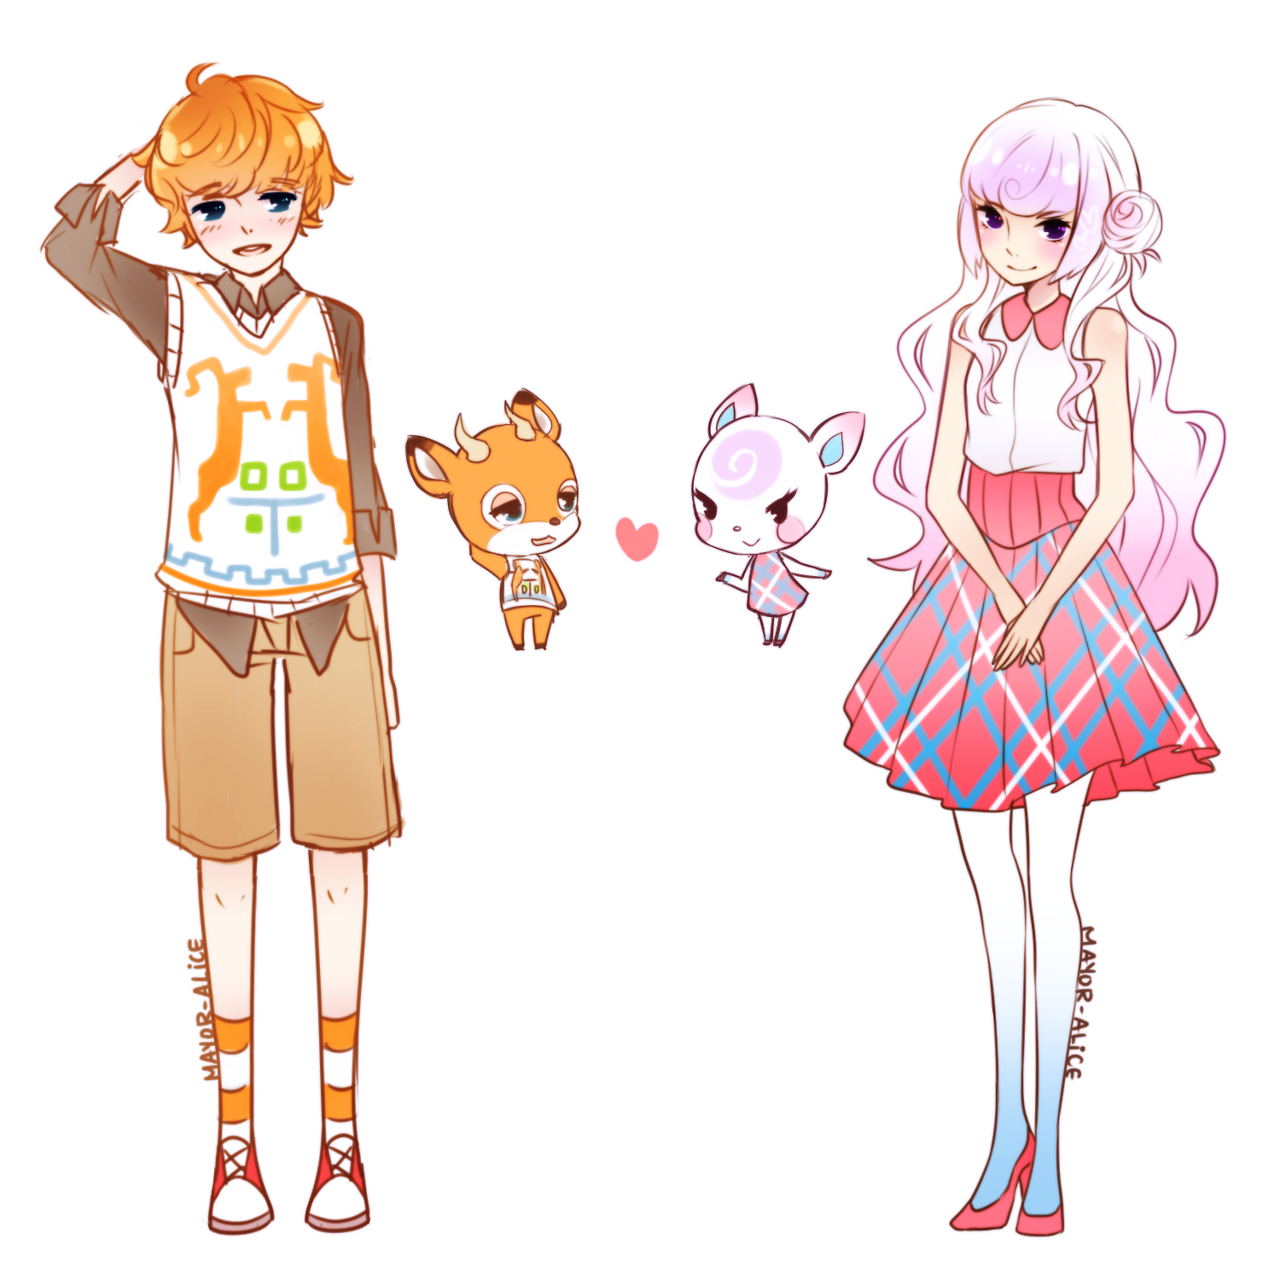 Beau And Diana From Animal Crossing Woah How Cool Anime Human